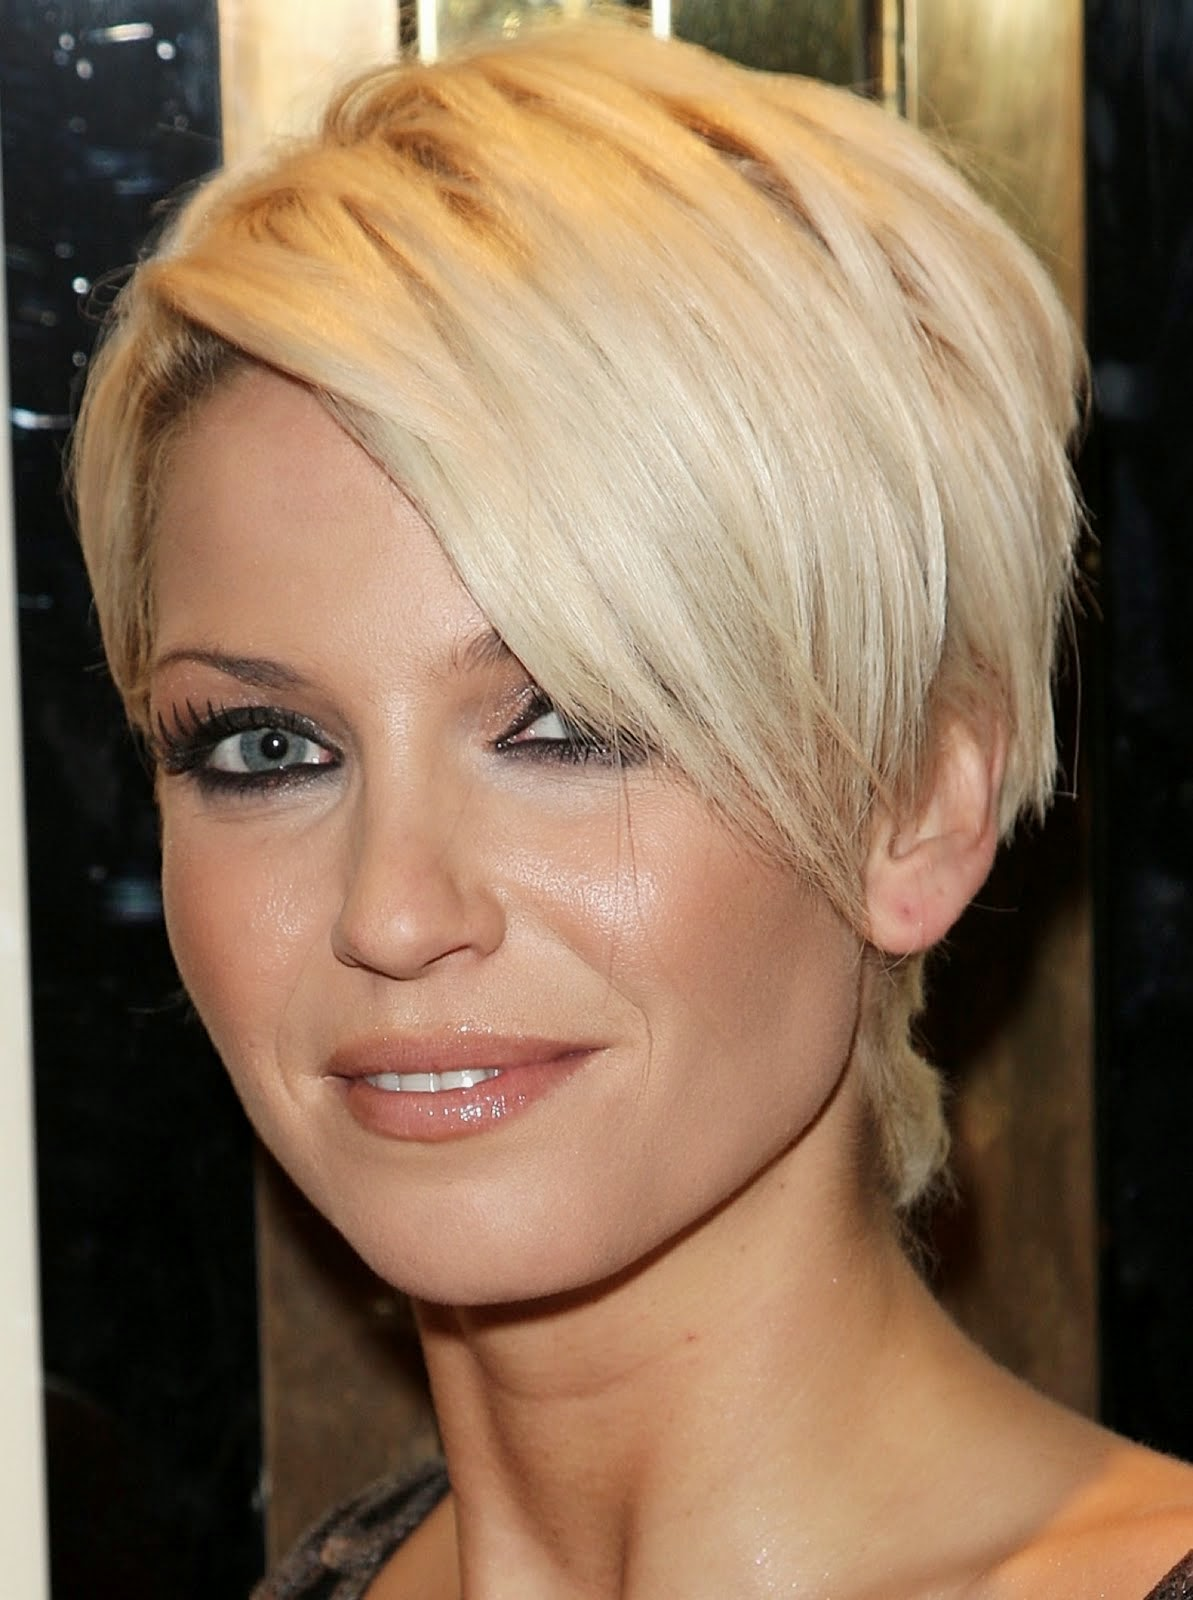 Short Hair Models Of 2014 2014 Hair Style Trend Hair Style